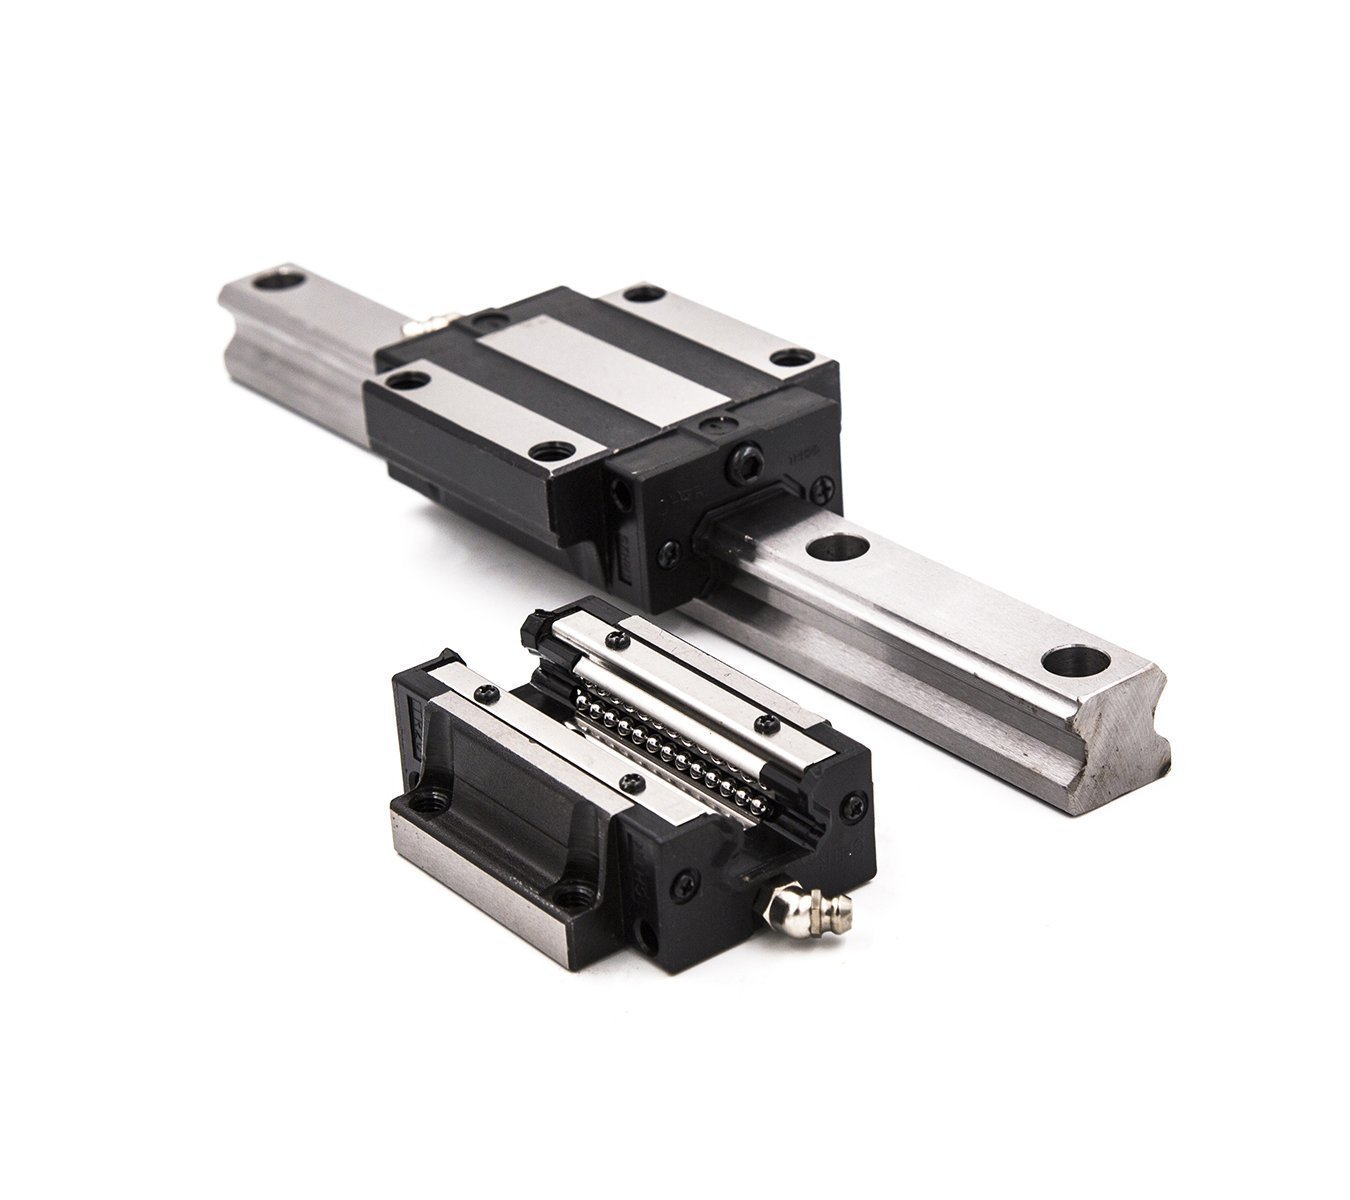 Linear Ball Bearings Slide Block Aluminum Alloy Liner Slide Block Sliding Accurate Sliding Parts scs25uu